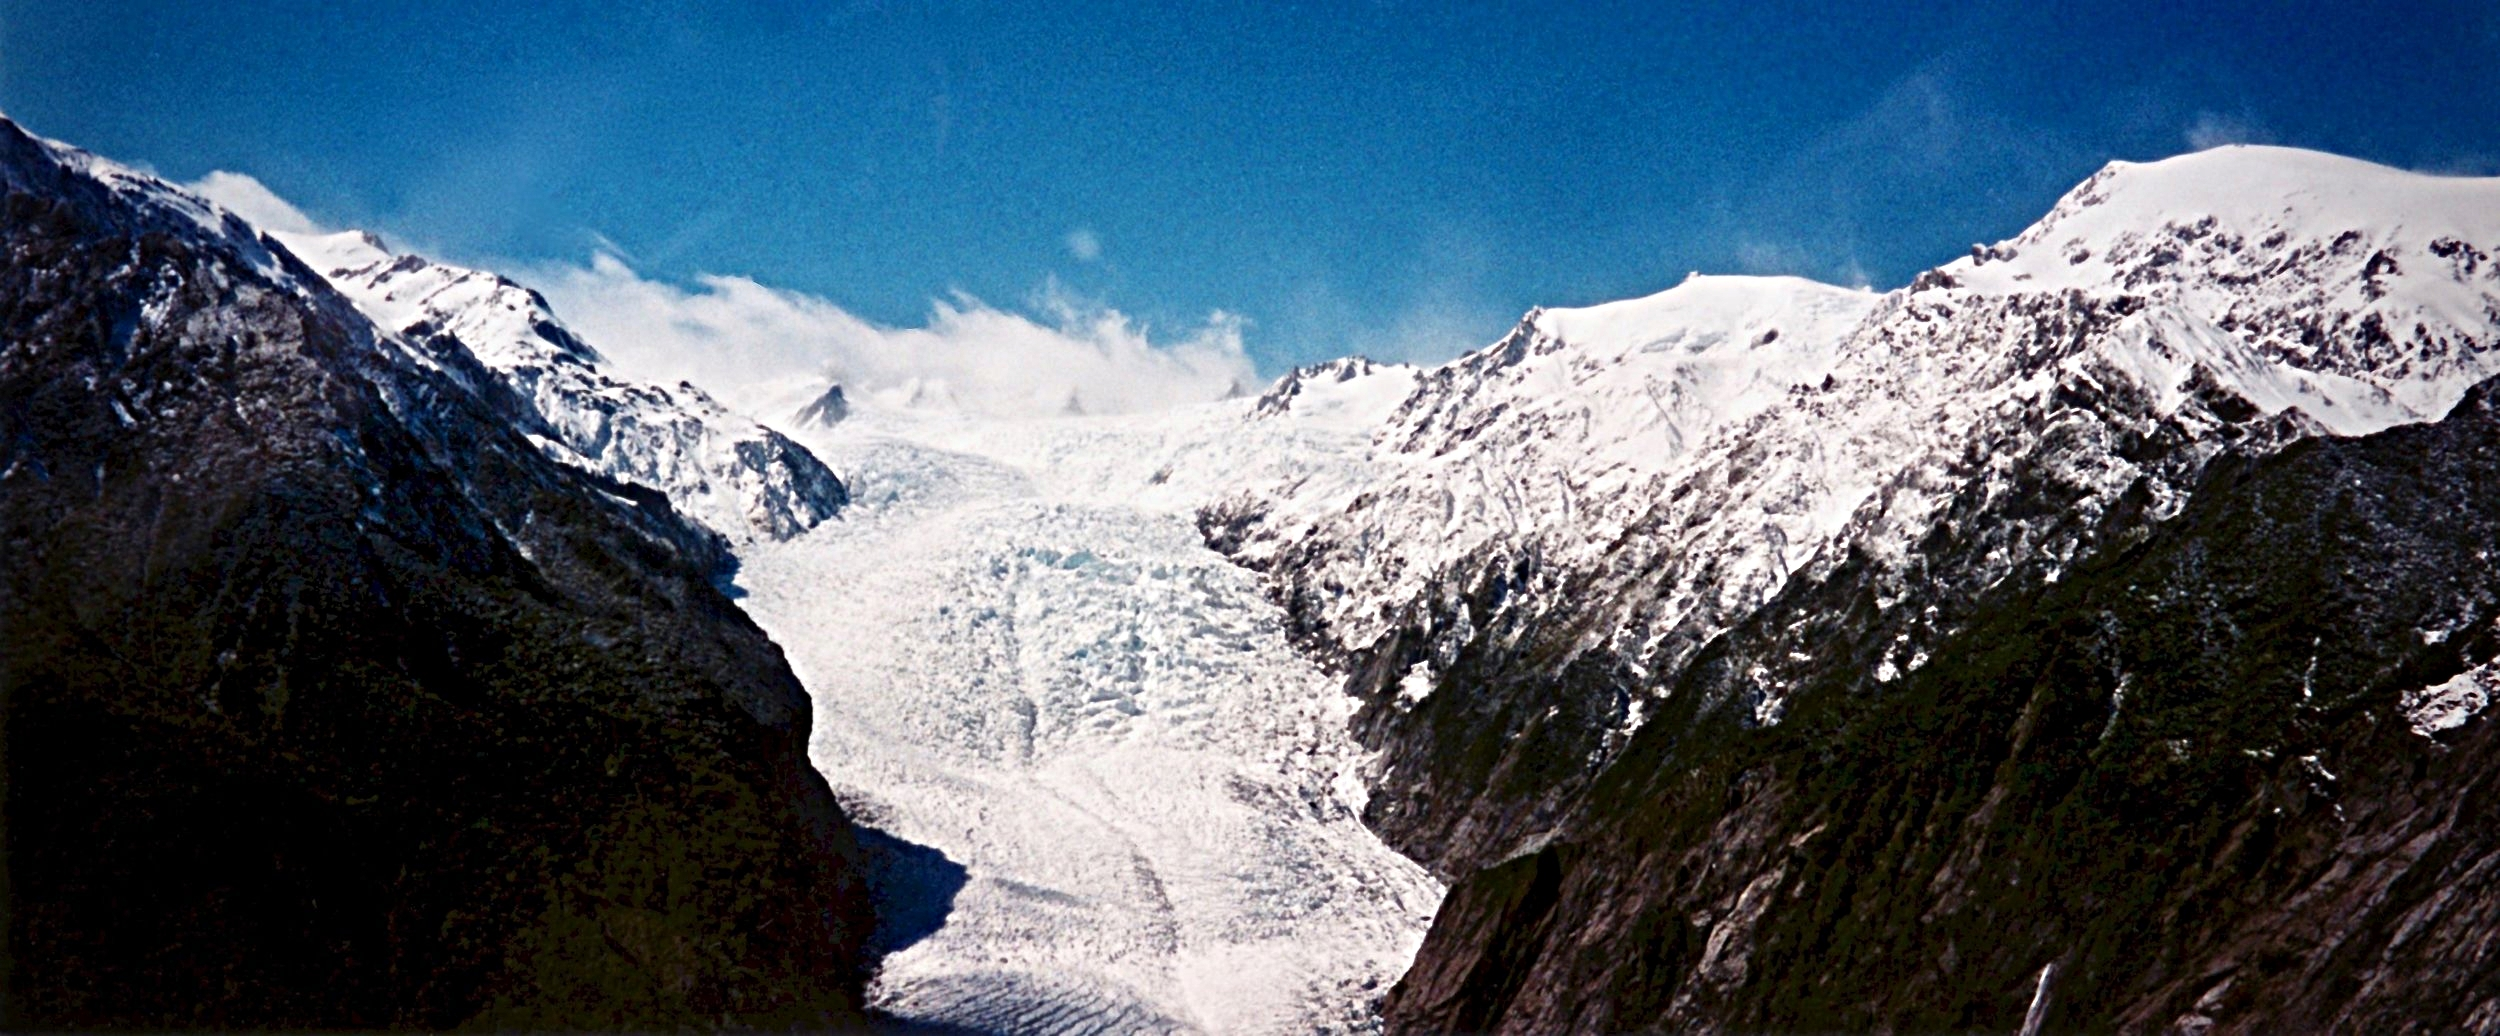 Fox Glacier from the helicopter, New Zealand